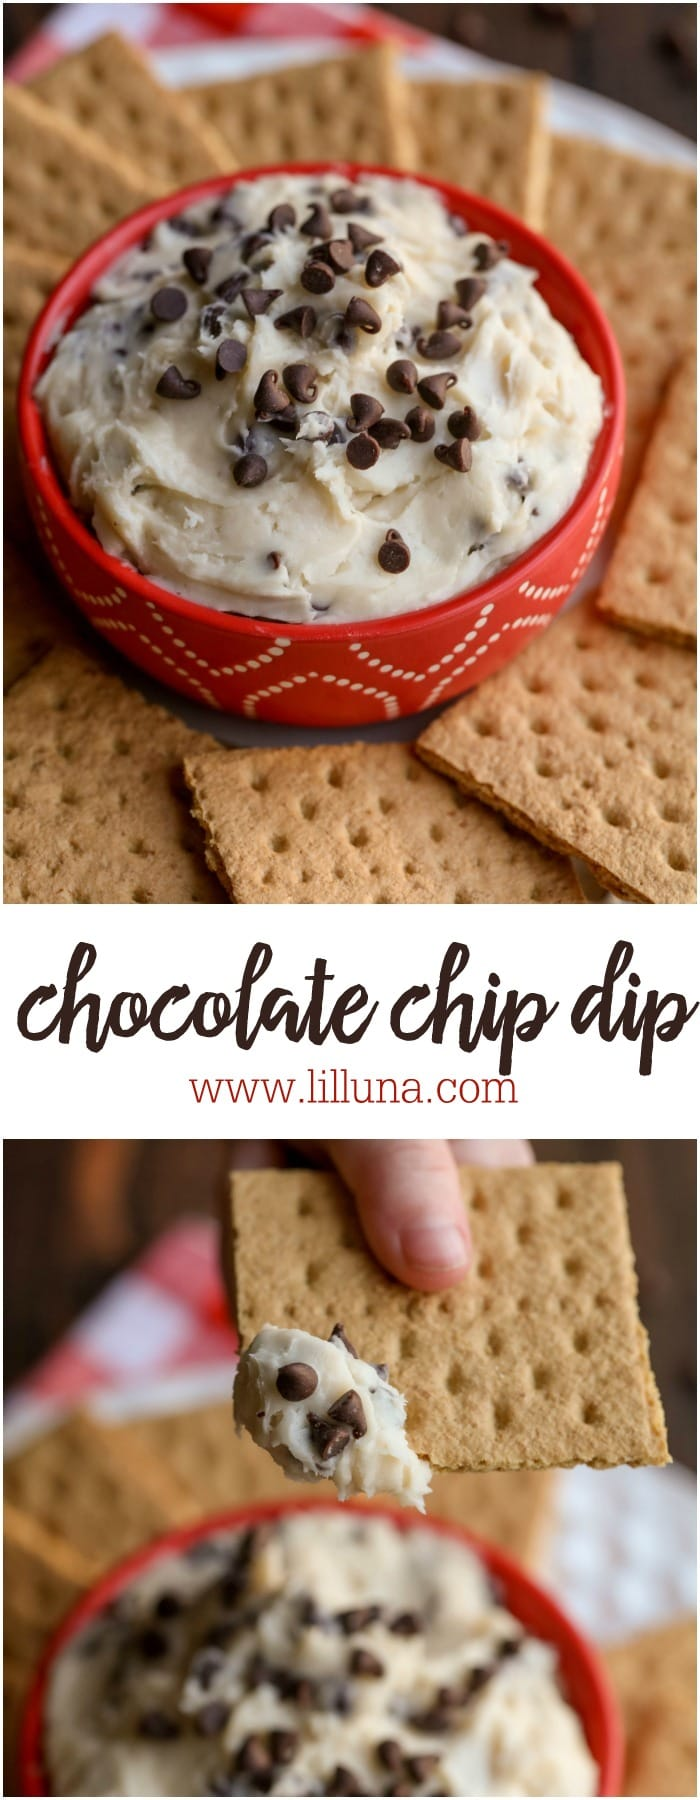 Chocolate Chip Dip - a simple, creamy delicious treat filled with mini chocolate chips. It's the perfect recipe for any party!